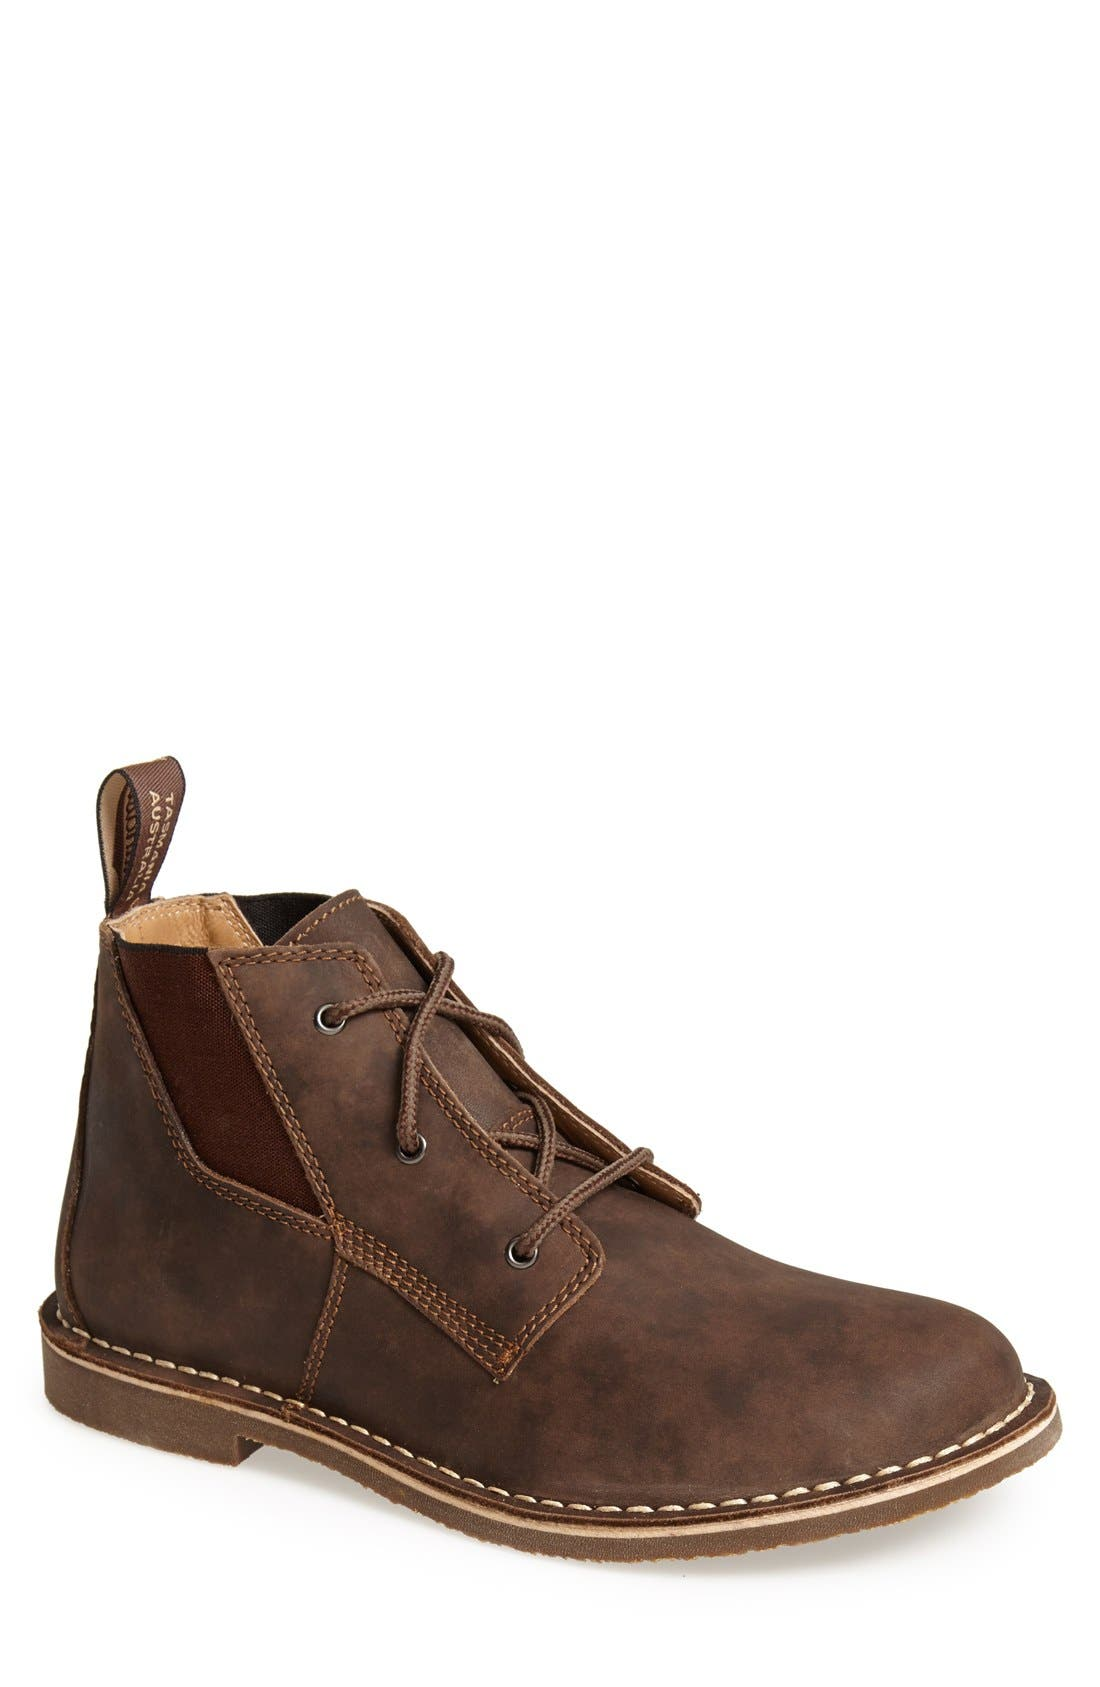 Blundstone Footwear Chukka Boot (Men)